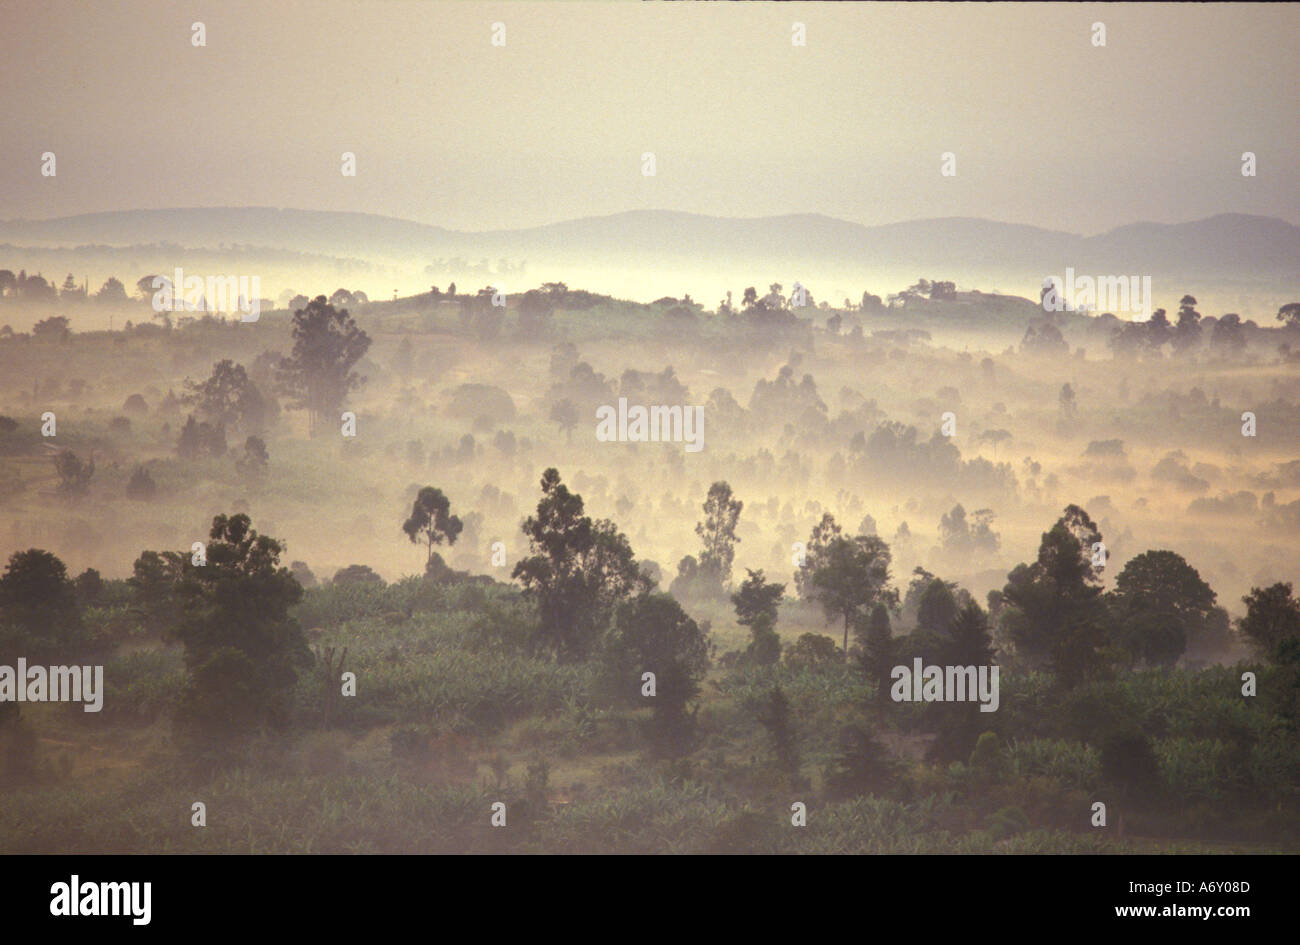 Spectacular scenic vista to distant mountains of golden eerie mist rising over Toro game park at dawn in Uganda - Stock Image